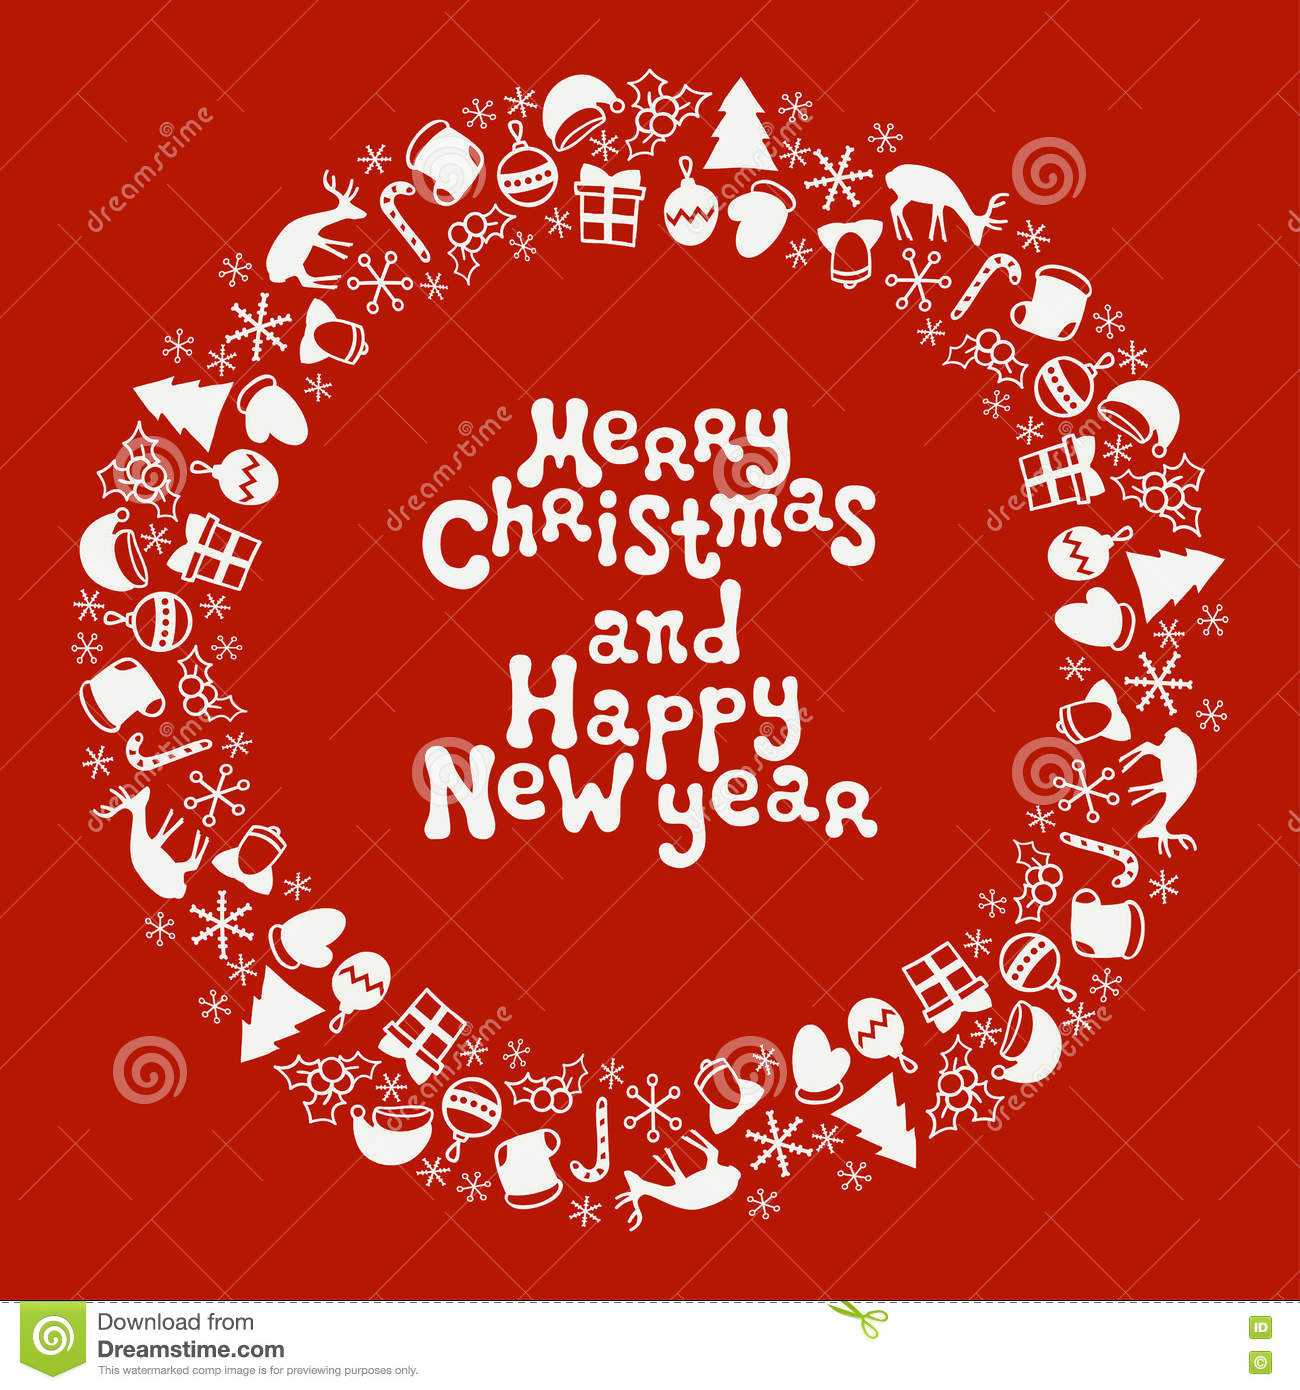 Merry christmas and happy new year lettering greeting card 2017 merry christmas and happy new year lettering greeting card 2017 christmas season hand drawn pattern vector letter illustration kristyandbryce Images